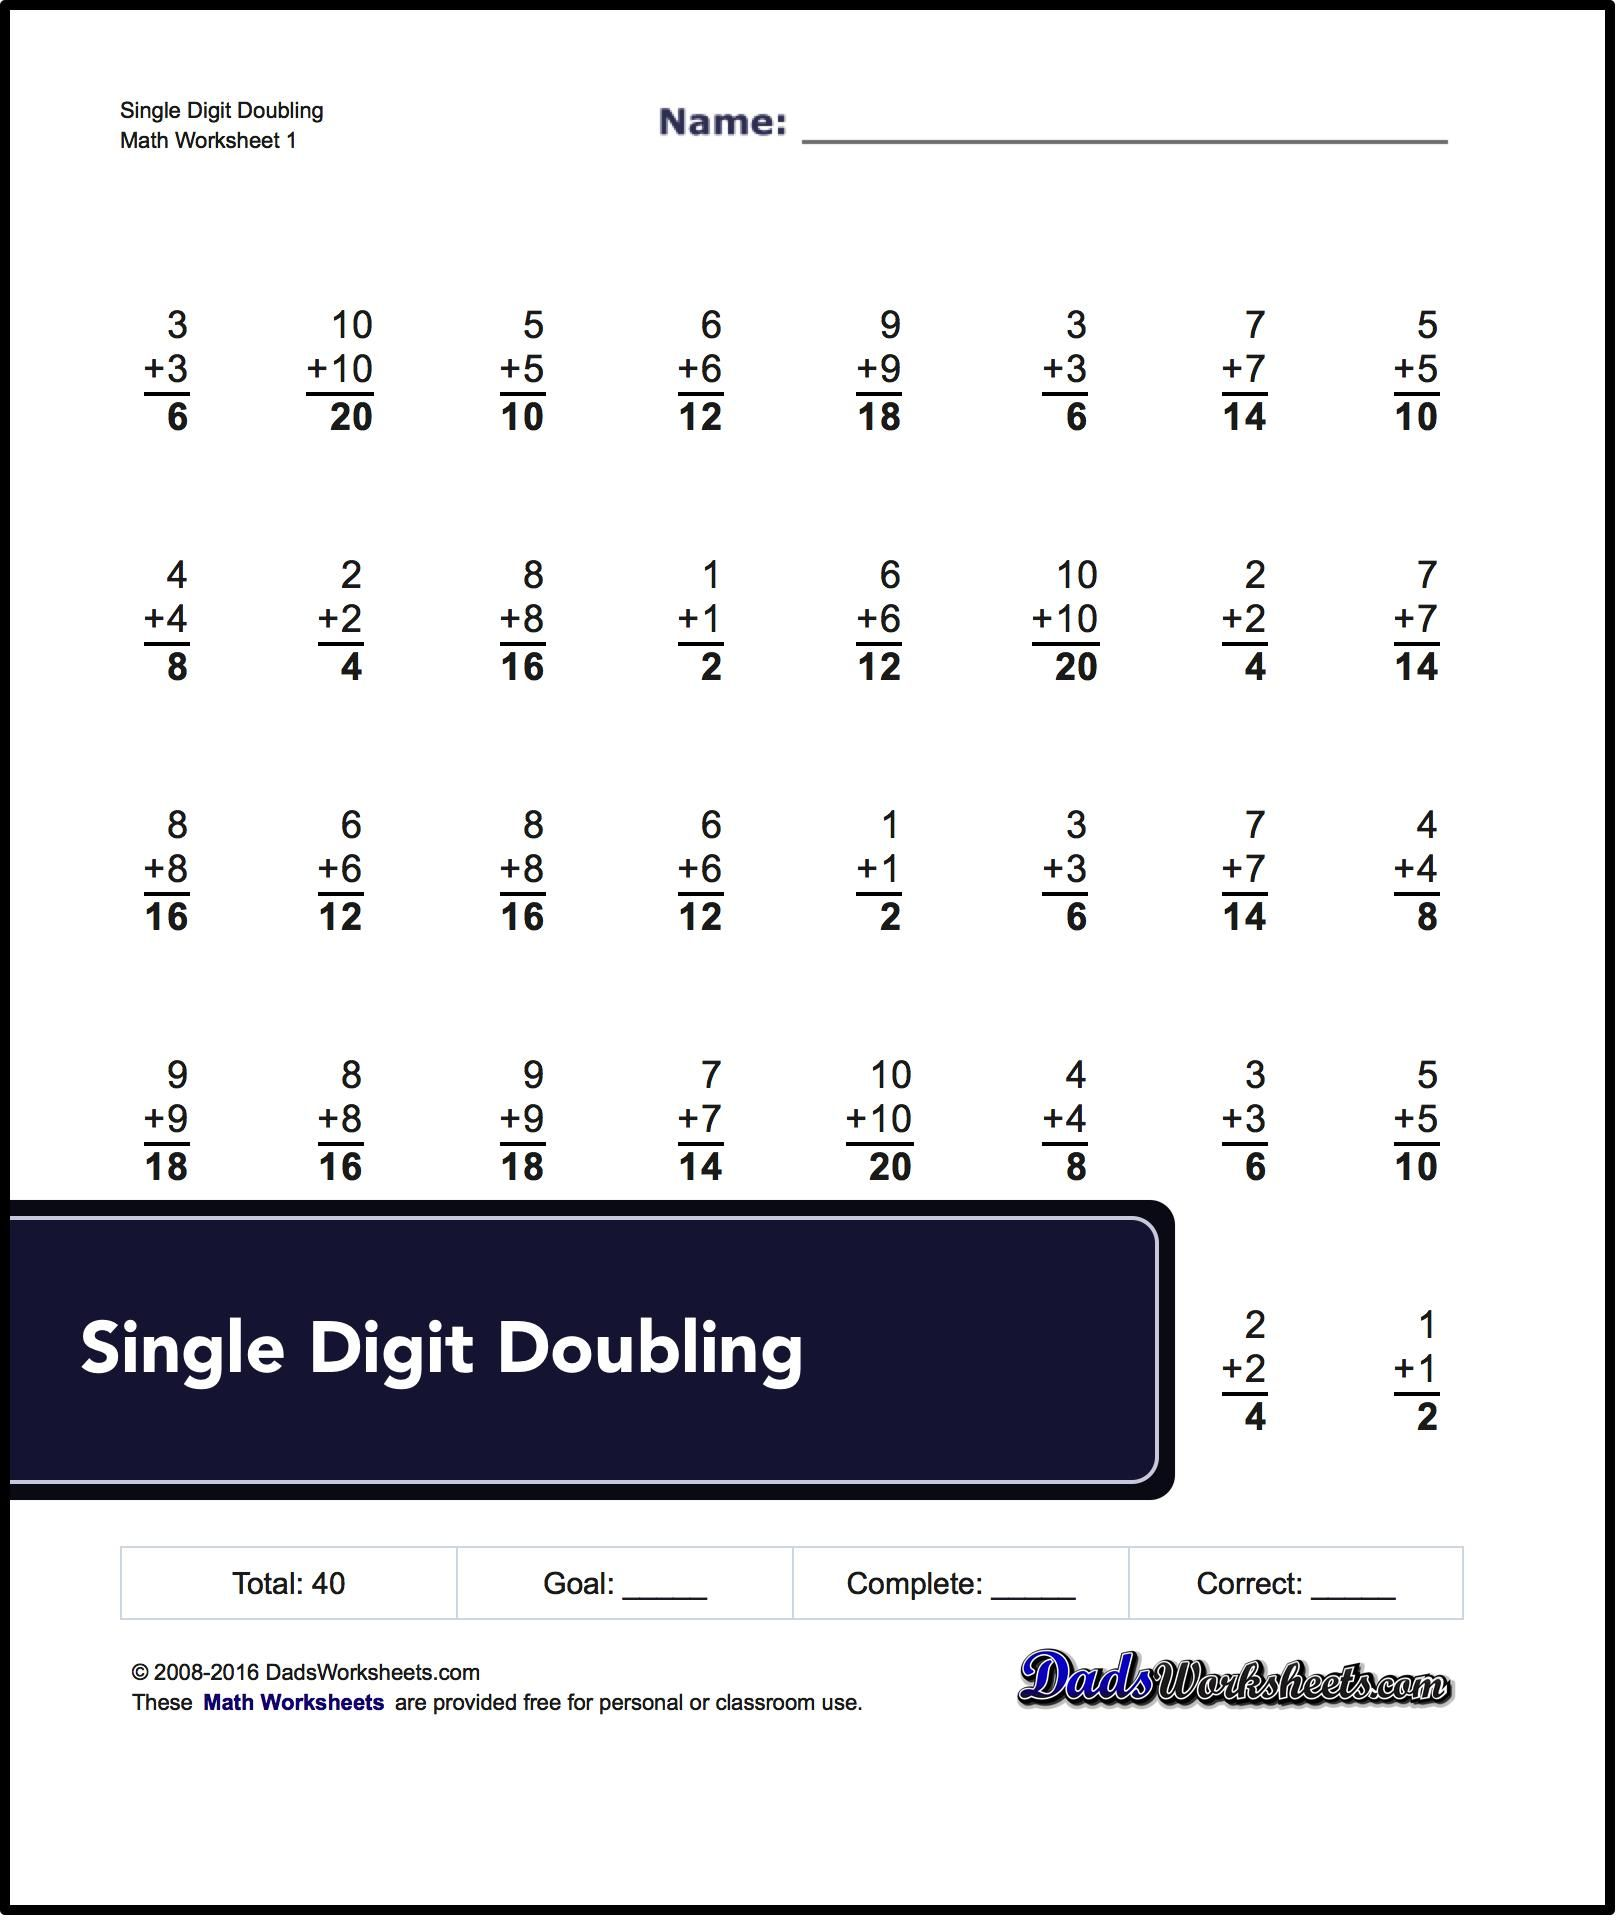 Practice Addition Worksheets For Doubling Values Includes